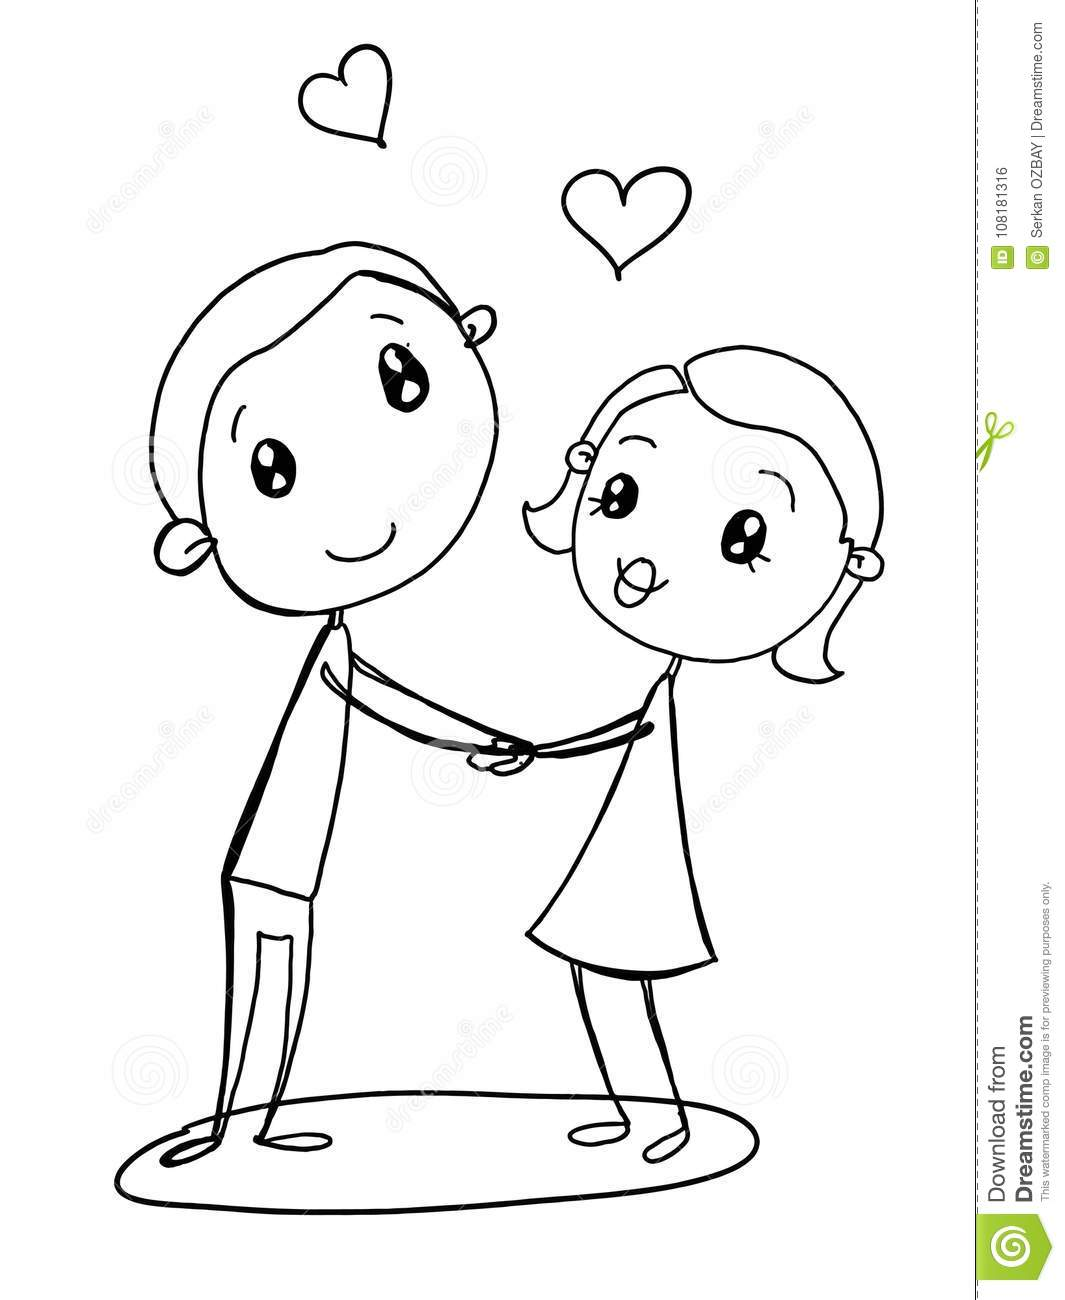 lesbian wedding coloring pages | Cute Couple Illustration Male Female Drawing Cartoon And ...